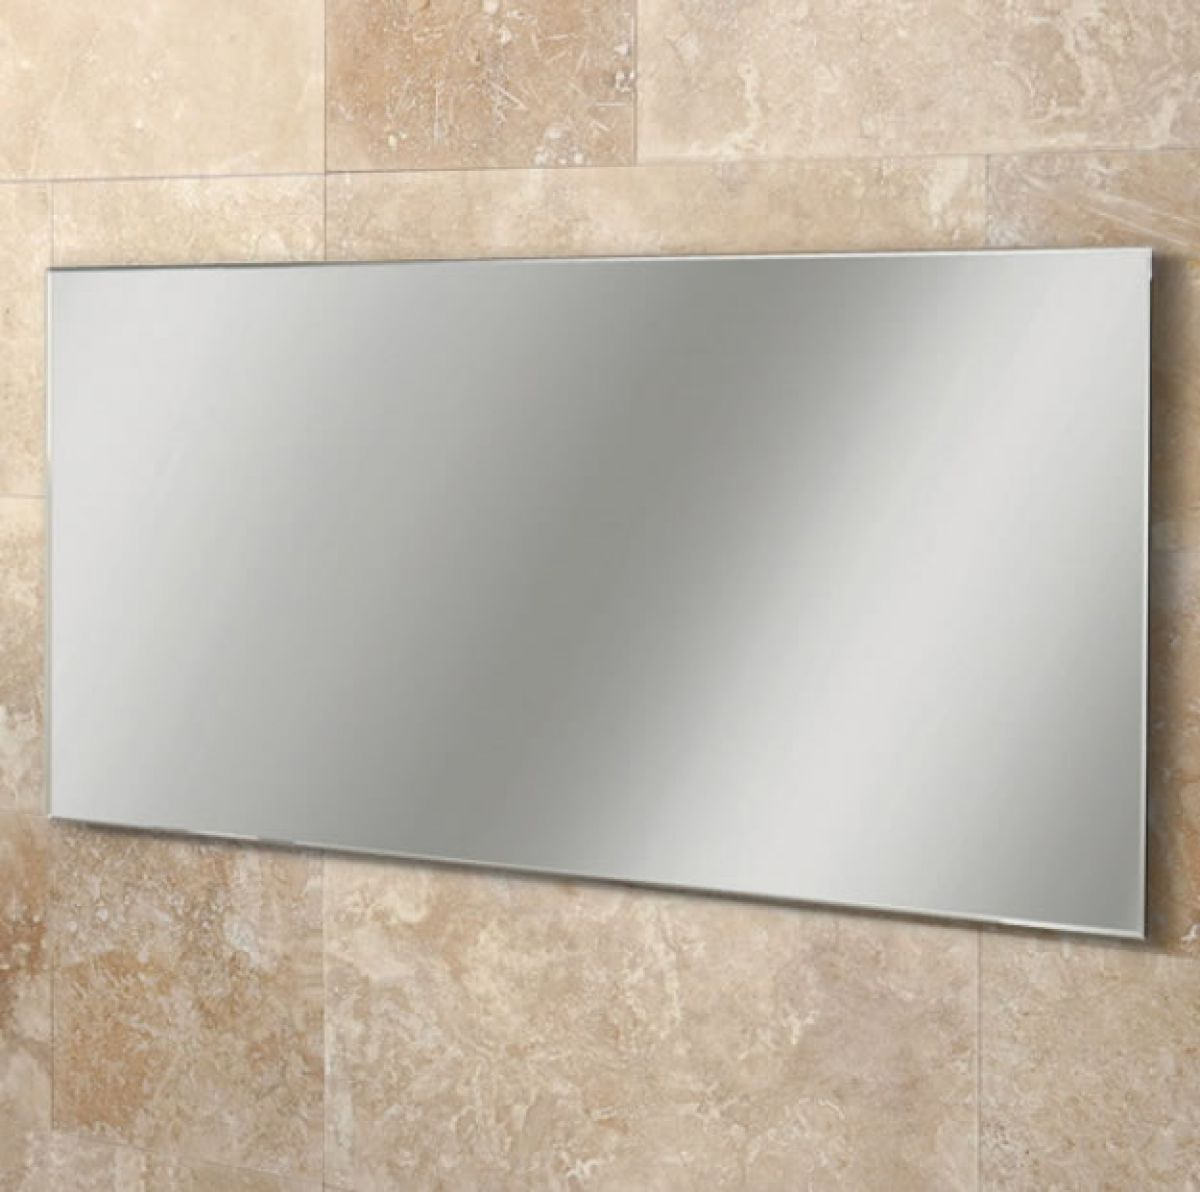 Hib willow large bathroom mirror uk bathrooms for Mirror video